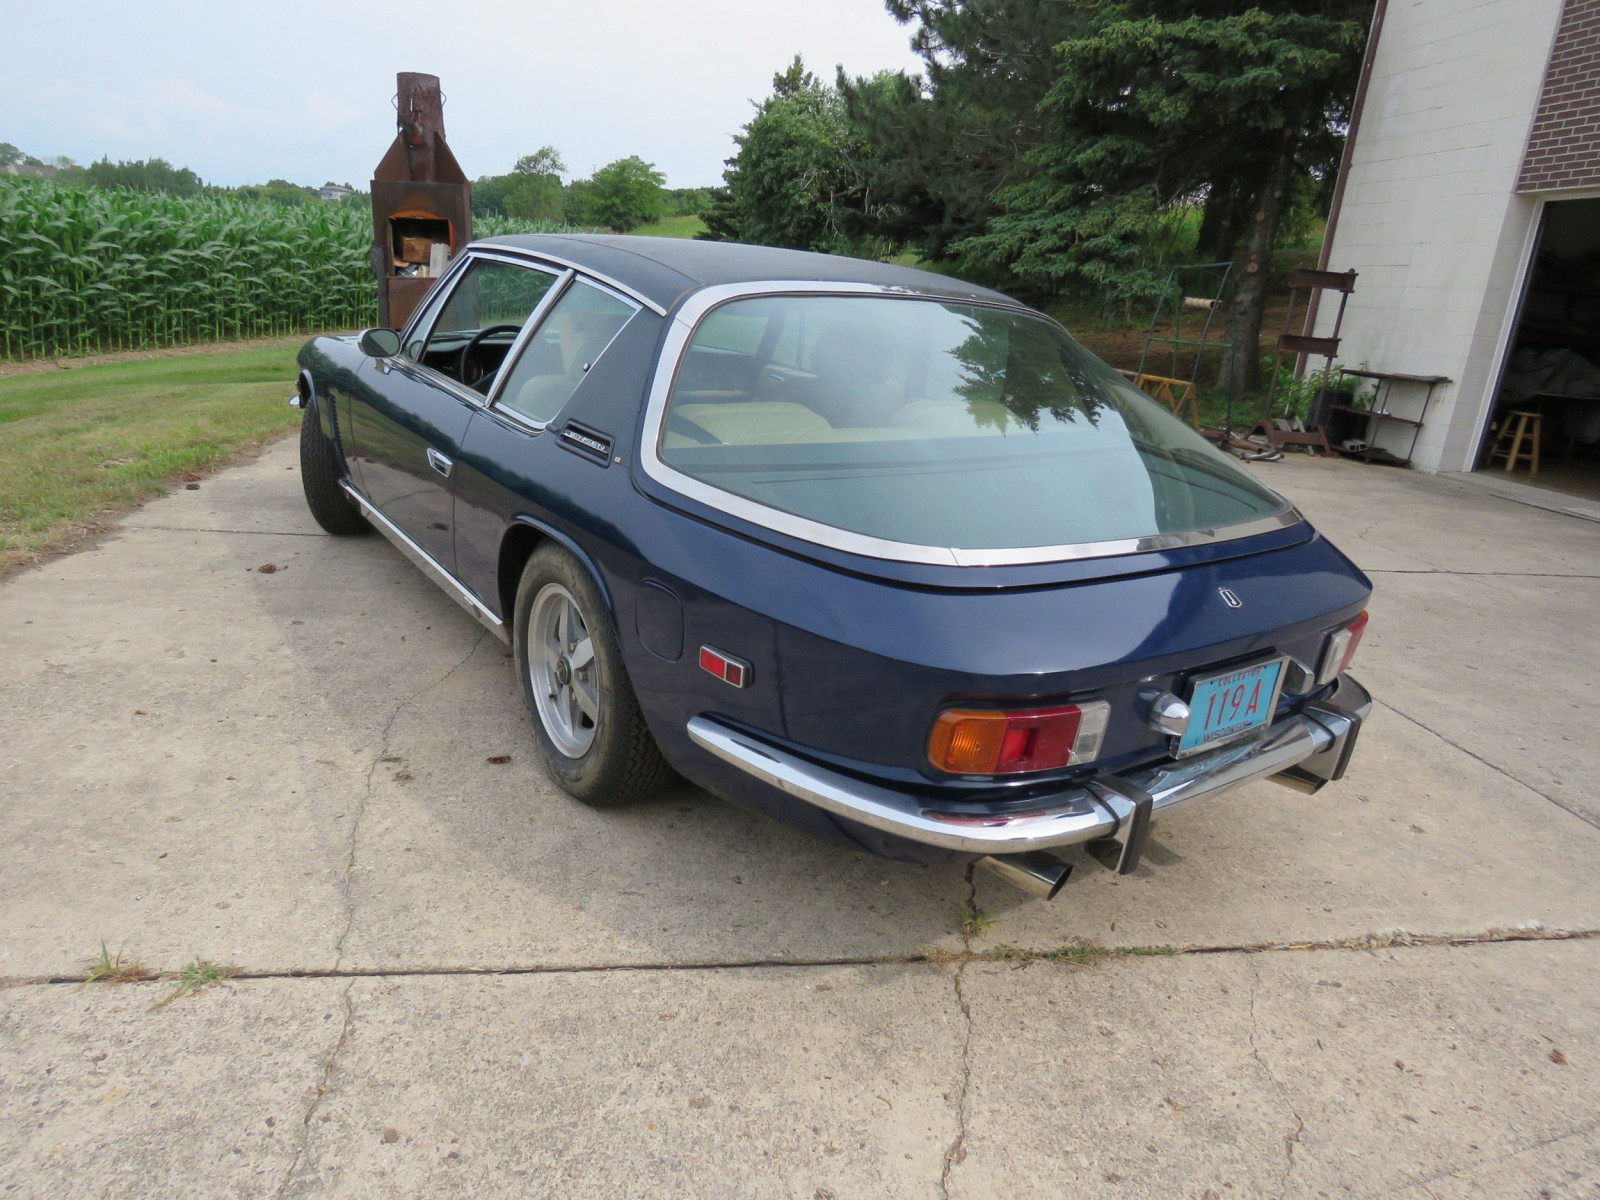 1973 Jensen Interceptor III Coupe - Image 5